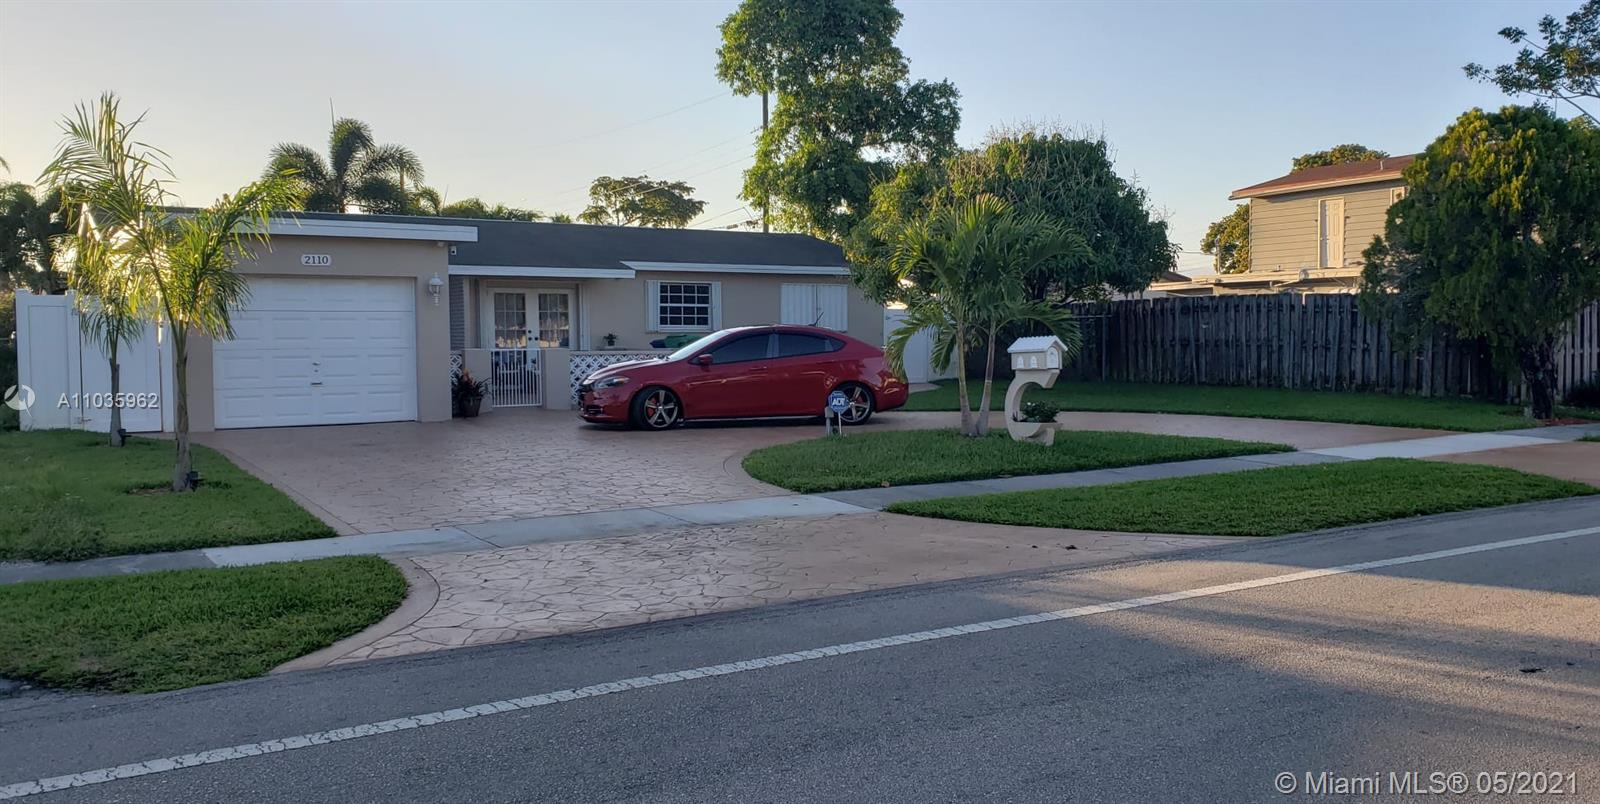 LOOK NO FURTHER! BUY THIS 1,521 SQFT GORGEOUS REMODELED POOL HOUSE! * 4 BEDROOMS / 2-BATHROOMS PLUS CONVERTED GARAGE INTO A ROOM WITH A CLOSET & A SPLIT A/C UNIT. SO IT COULD BE USED AS AN EXTRA BEDROOM, OR PERFECTLY FOR AN OFICE OR HOME SCHOOL! * 24x24 CERAMIC TILE THROUGHOUT *BEAUTIFUL AND SPACIOUS KITCHEN *STAINLESS STEEL APPLIANCES *NATURAL GAS TANKLESS WATER HEATER *ACCORDION SHUTTERS ACROSS THE WHOLE HOUSE *CONVENIENT FRONT PORCH *RECENTLY DONE STAMPED CONCRET DRIVEWAY FOR UP TO FIVE CARS, AND ALSO THROUGHOUT AMAZING POOL AREA. WONDERFUL FOR ENTERTAINING! *2-YR-OLD POOL PUMP * APROX. 4-YR NEW A/C SYSTEM * THIS GEM ALSO HAS GENERATOR CONNECTION AND NATURAL GAS BBQ CONNECTION * BRING YOUR OFFER, IT WON'T LAST! *